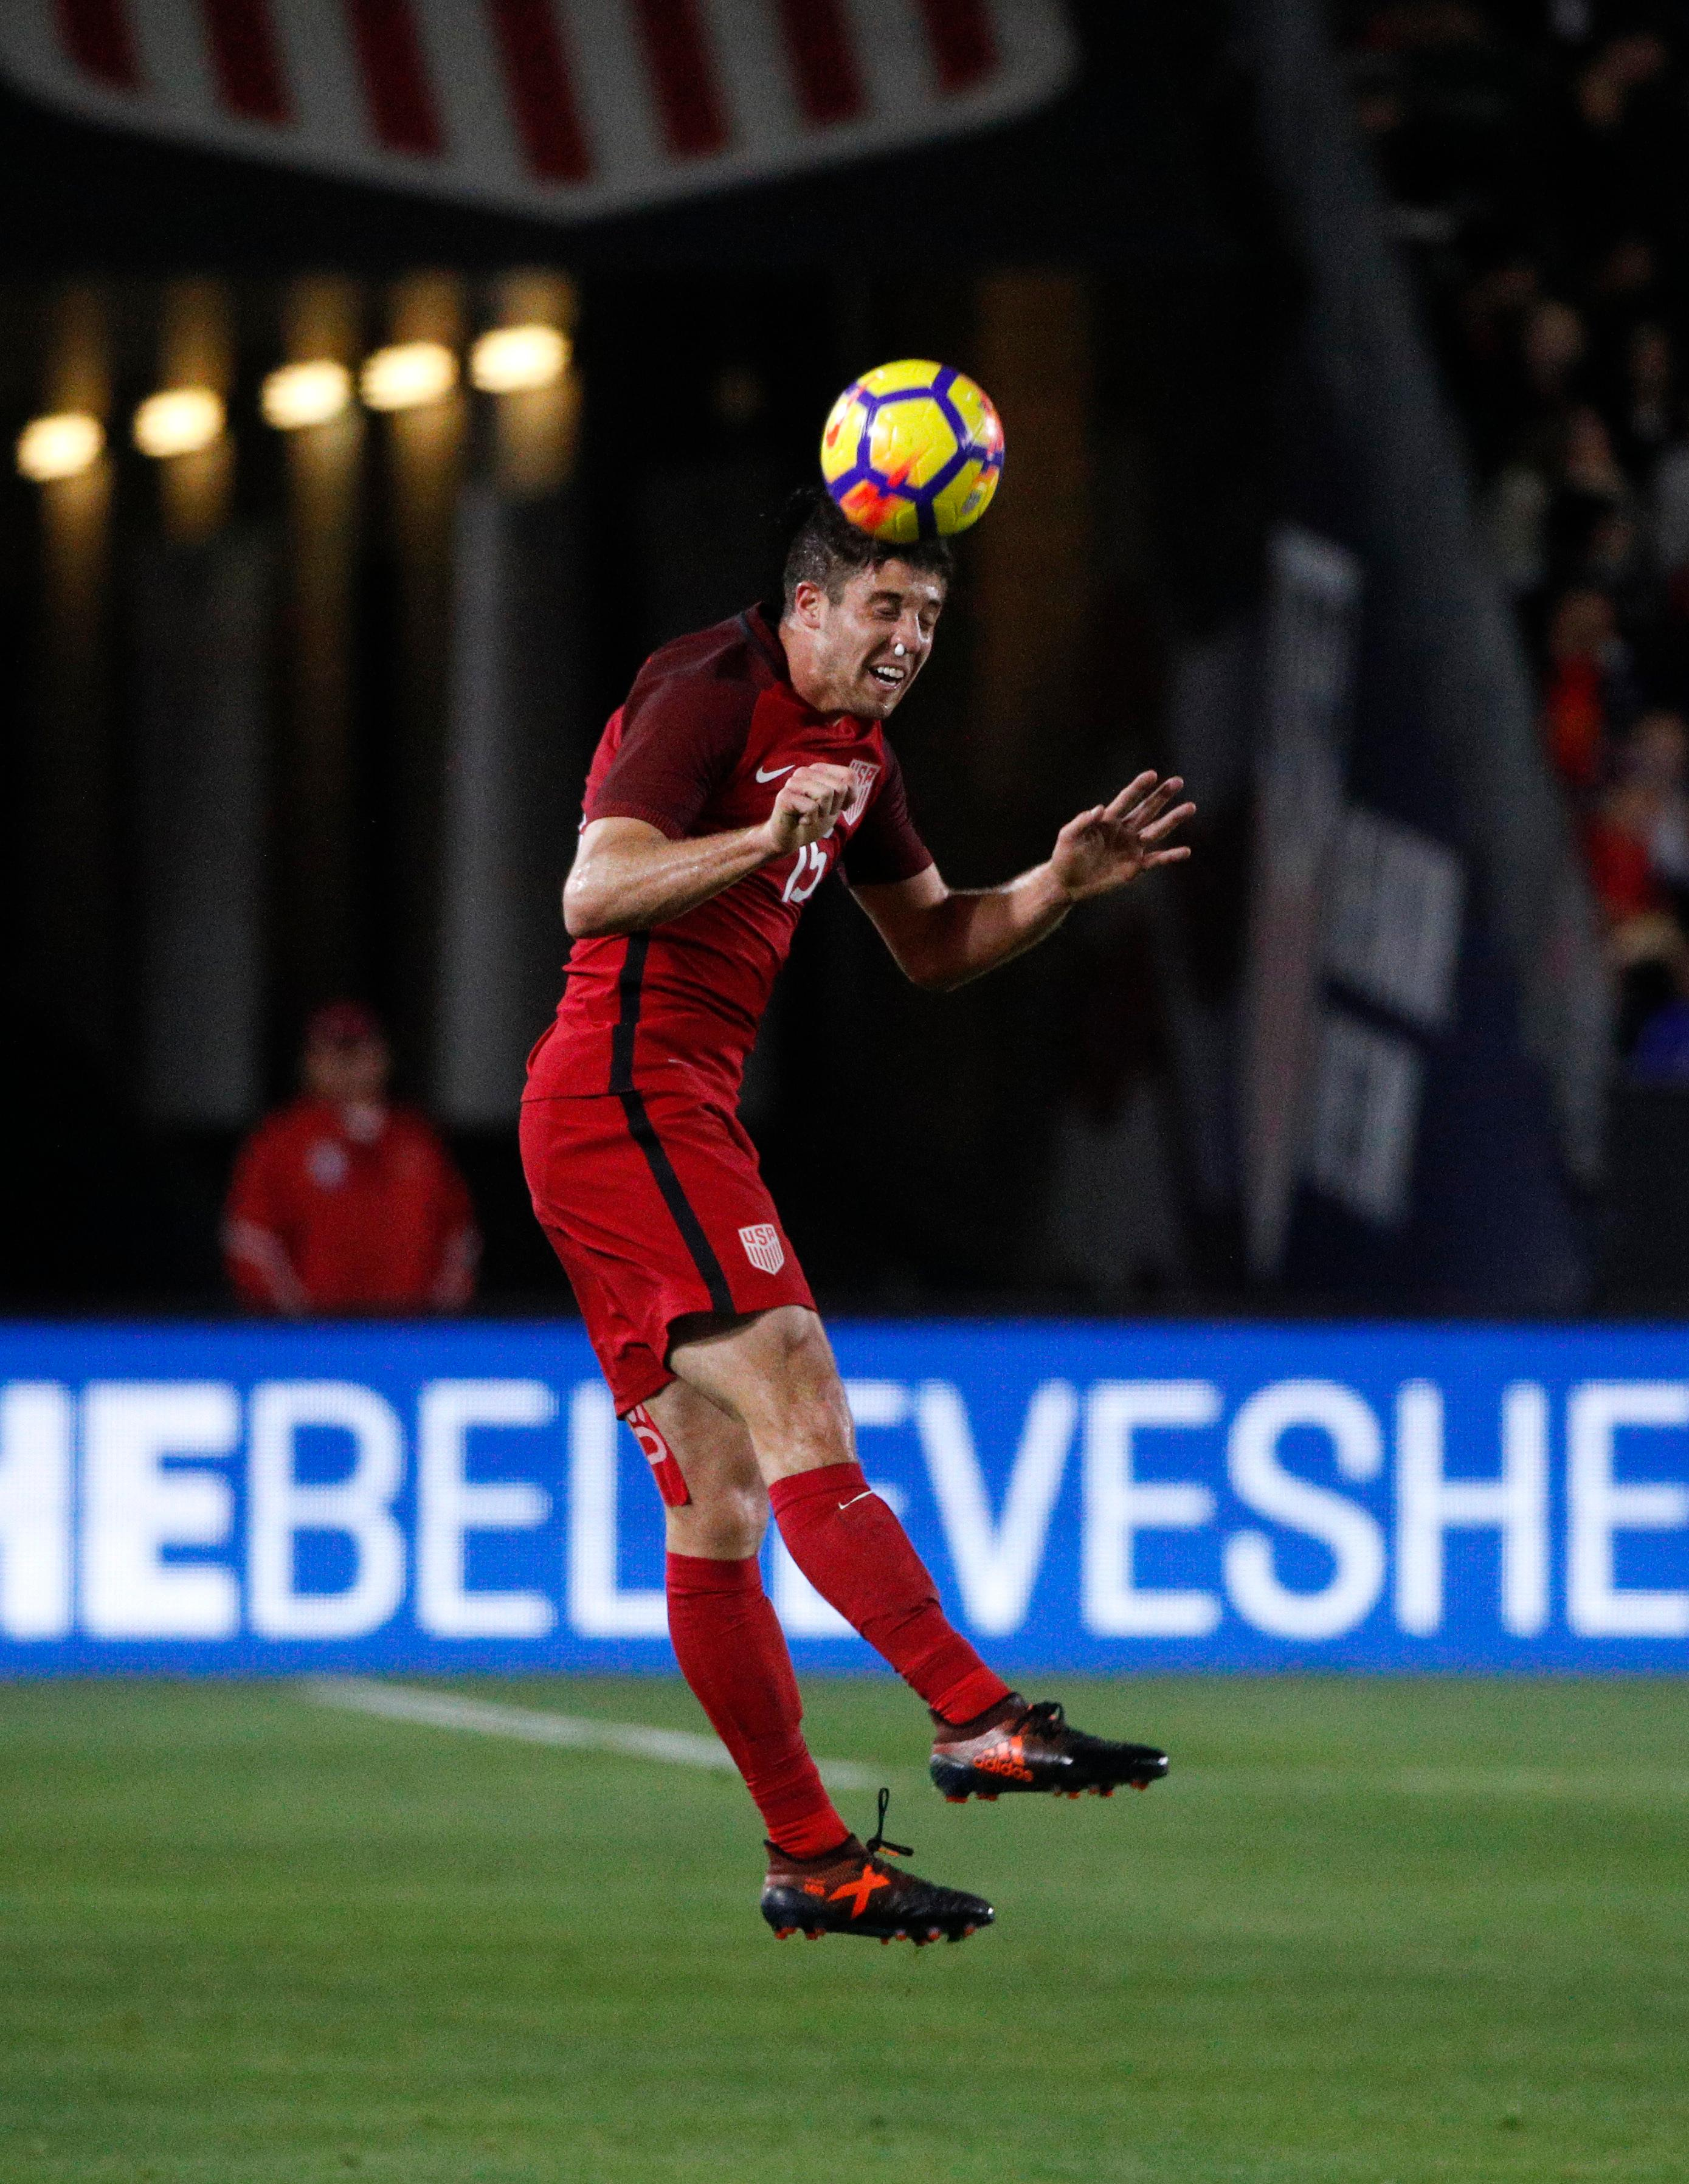 United States defender Matt Polster heads the ball during the second half of an international friendly soccer match against Bosnia and Herzegovina Sunday, Jan. 28, 2018, in Carson, Calif. The game ended in a 0-0 draw. (AP Photo/Jae C. Hong)